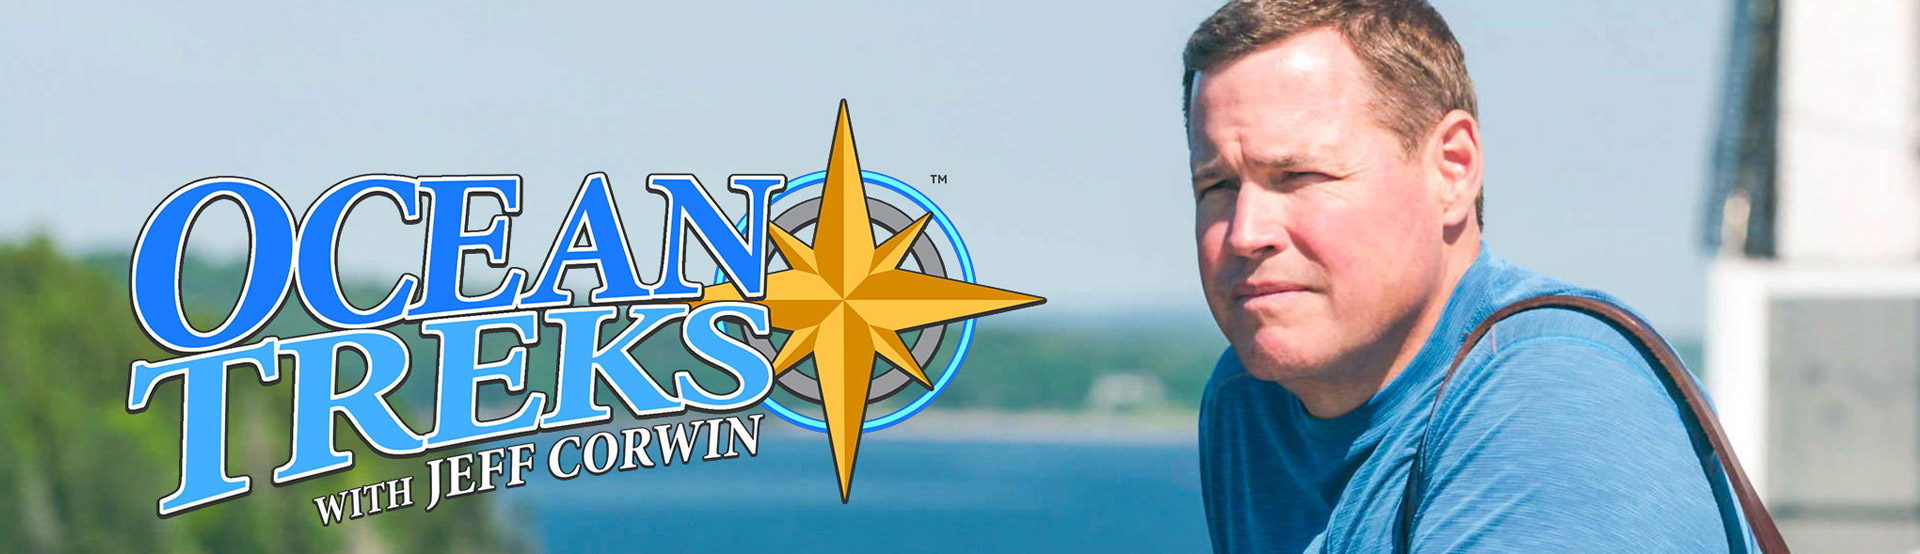 Banner image for Ocean Treks With Jeff Corwin